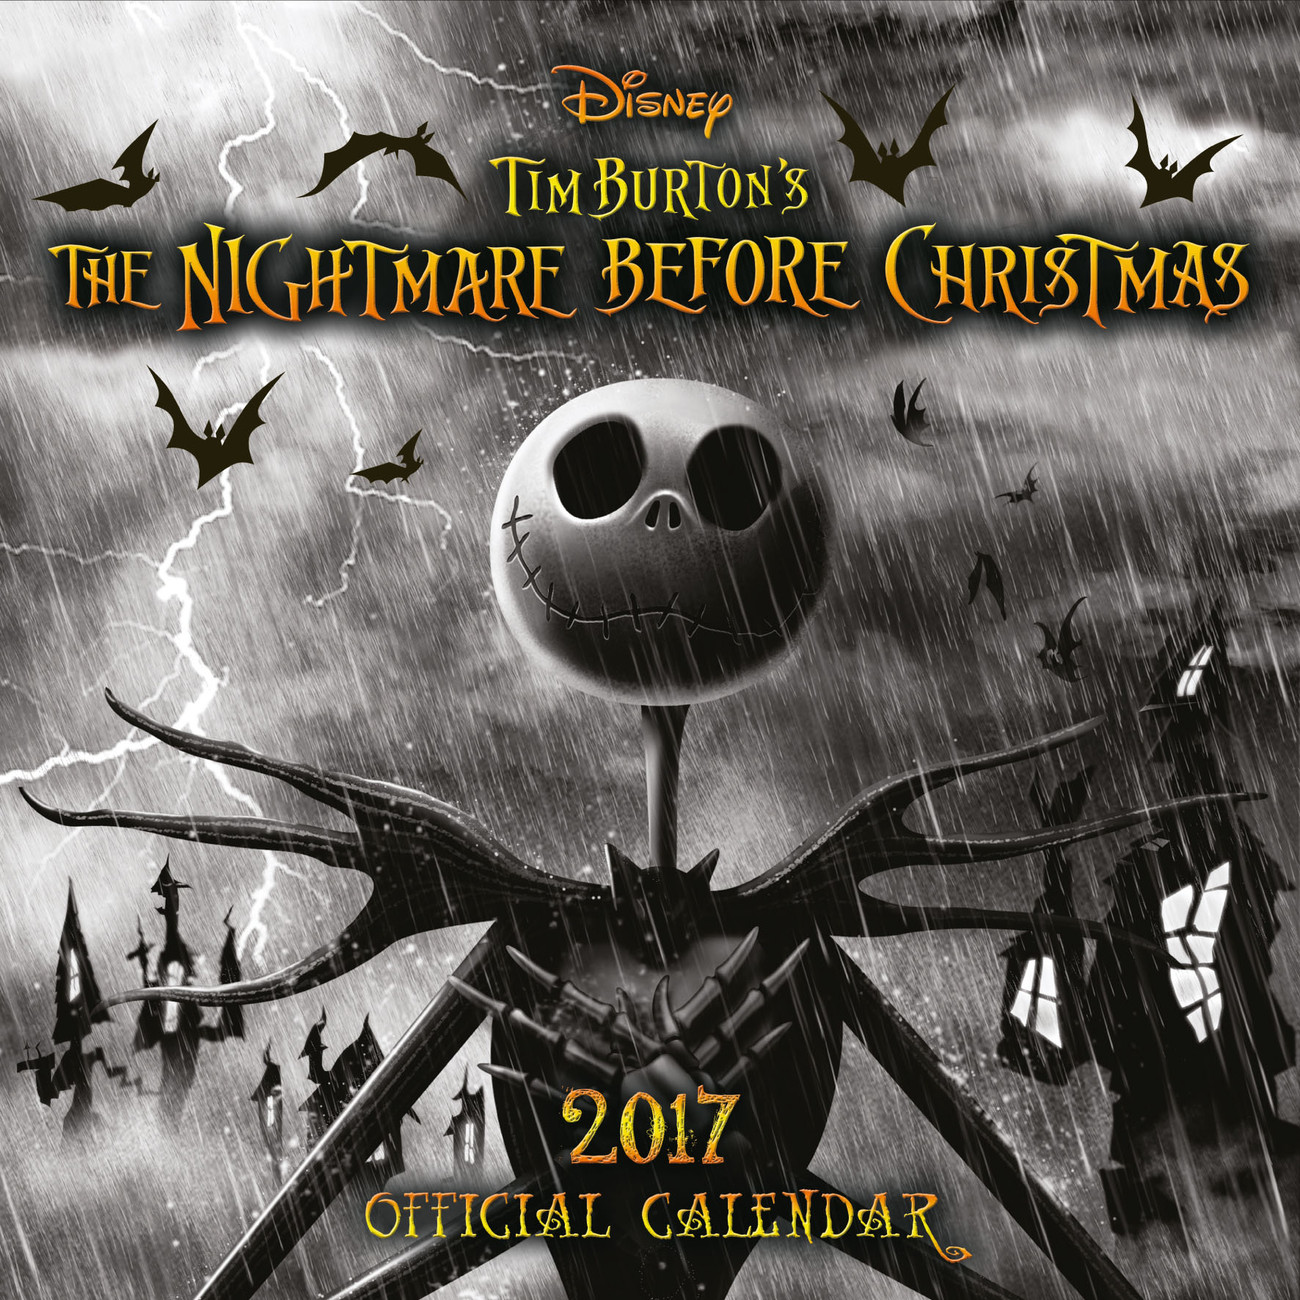 The Nightmare Before Christmas - Calendars 2018 on EuroPosters